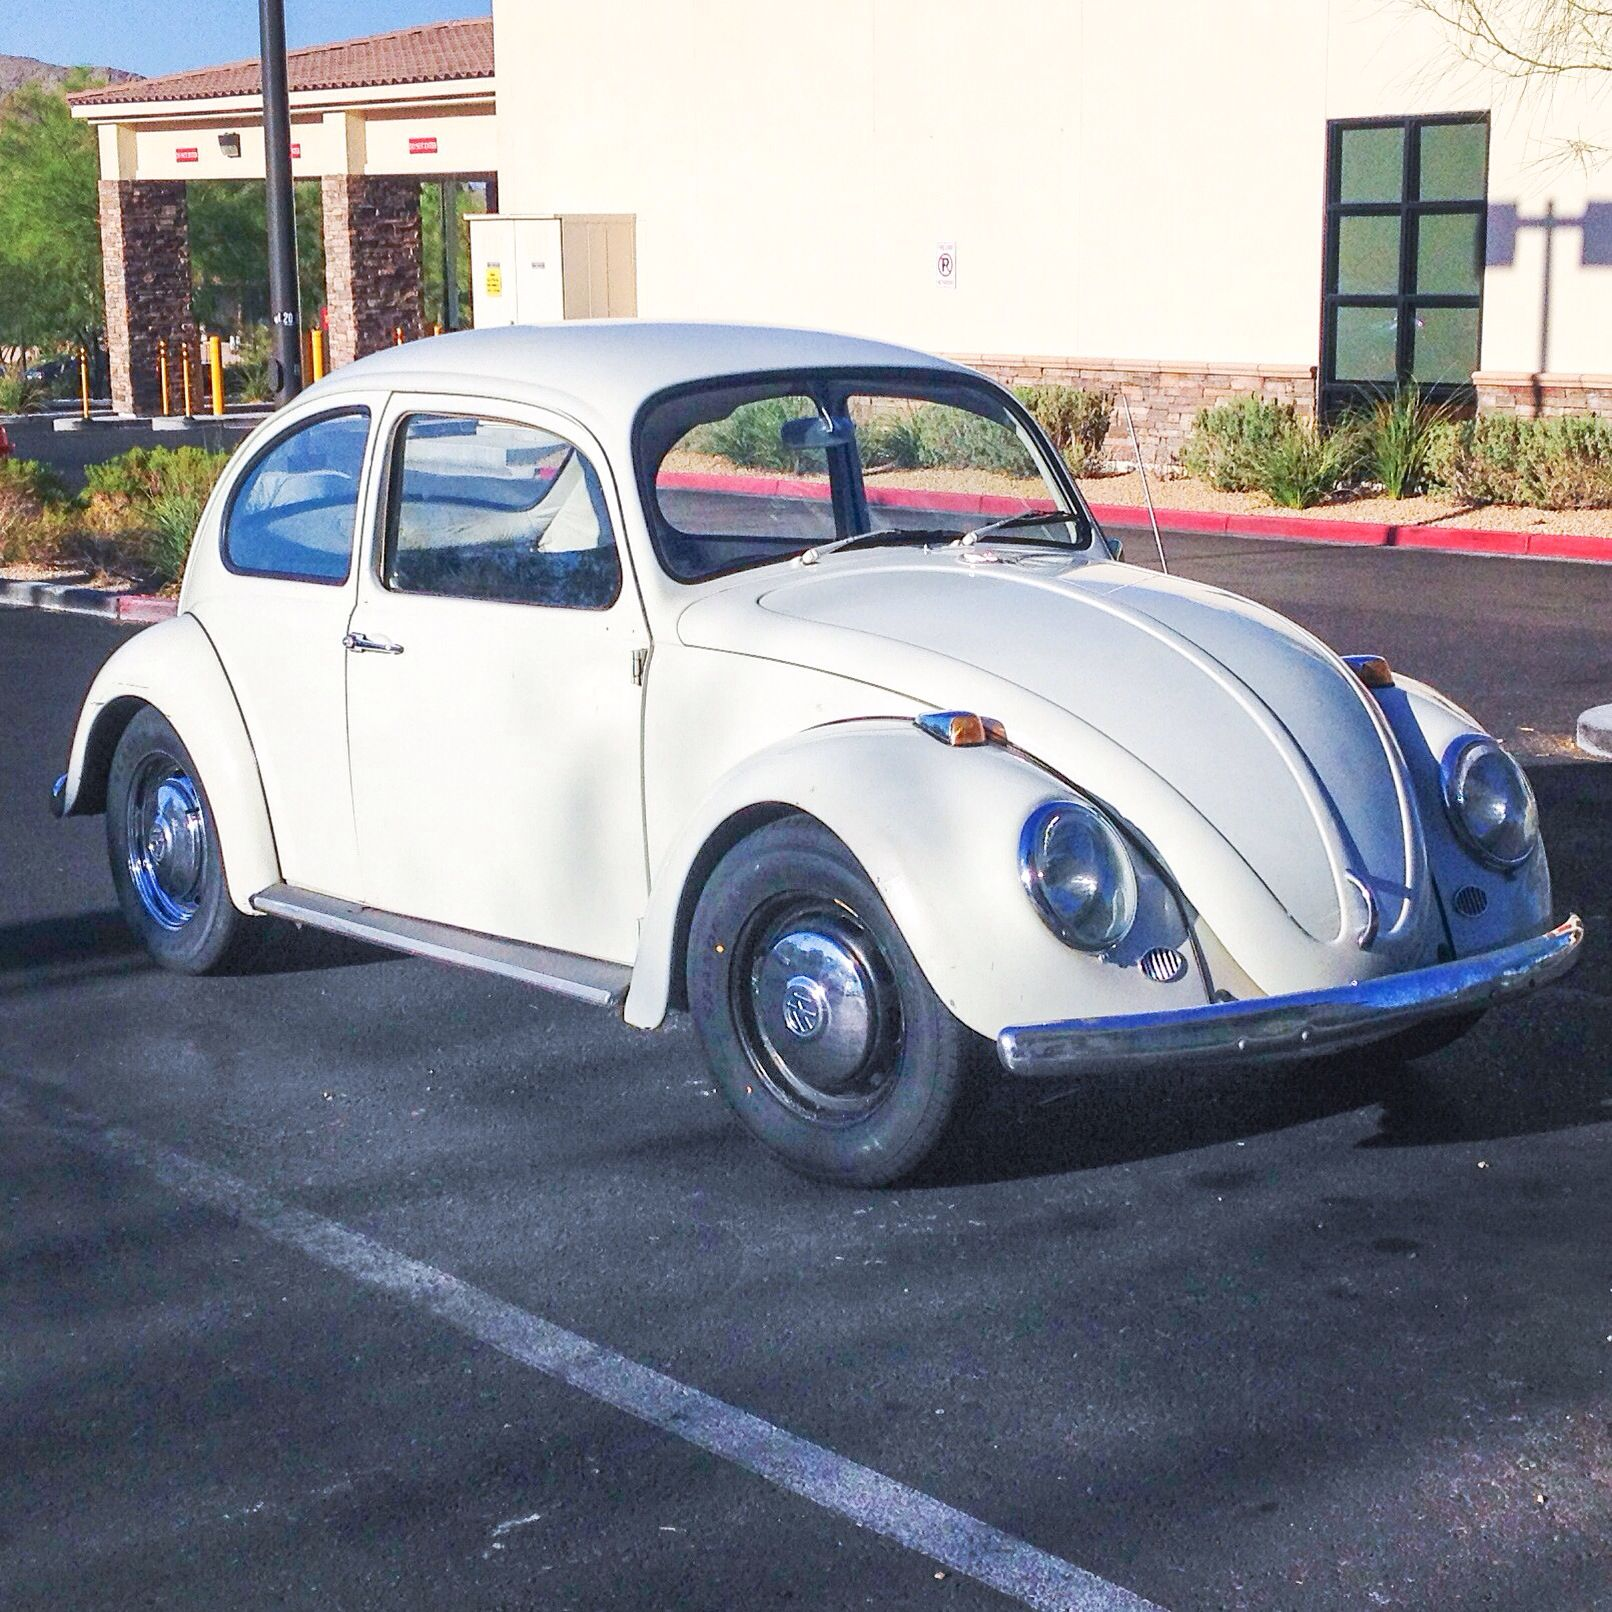 Buy Volkswagen: My Mother's 1966 VW Beetle With New Tires From Big-O Tires